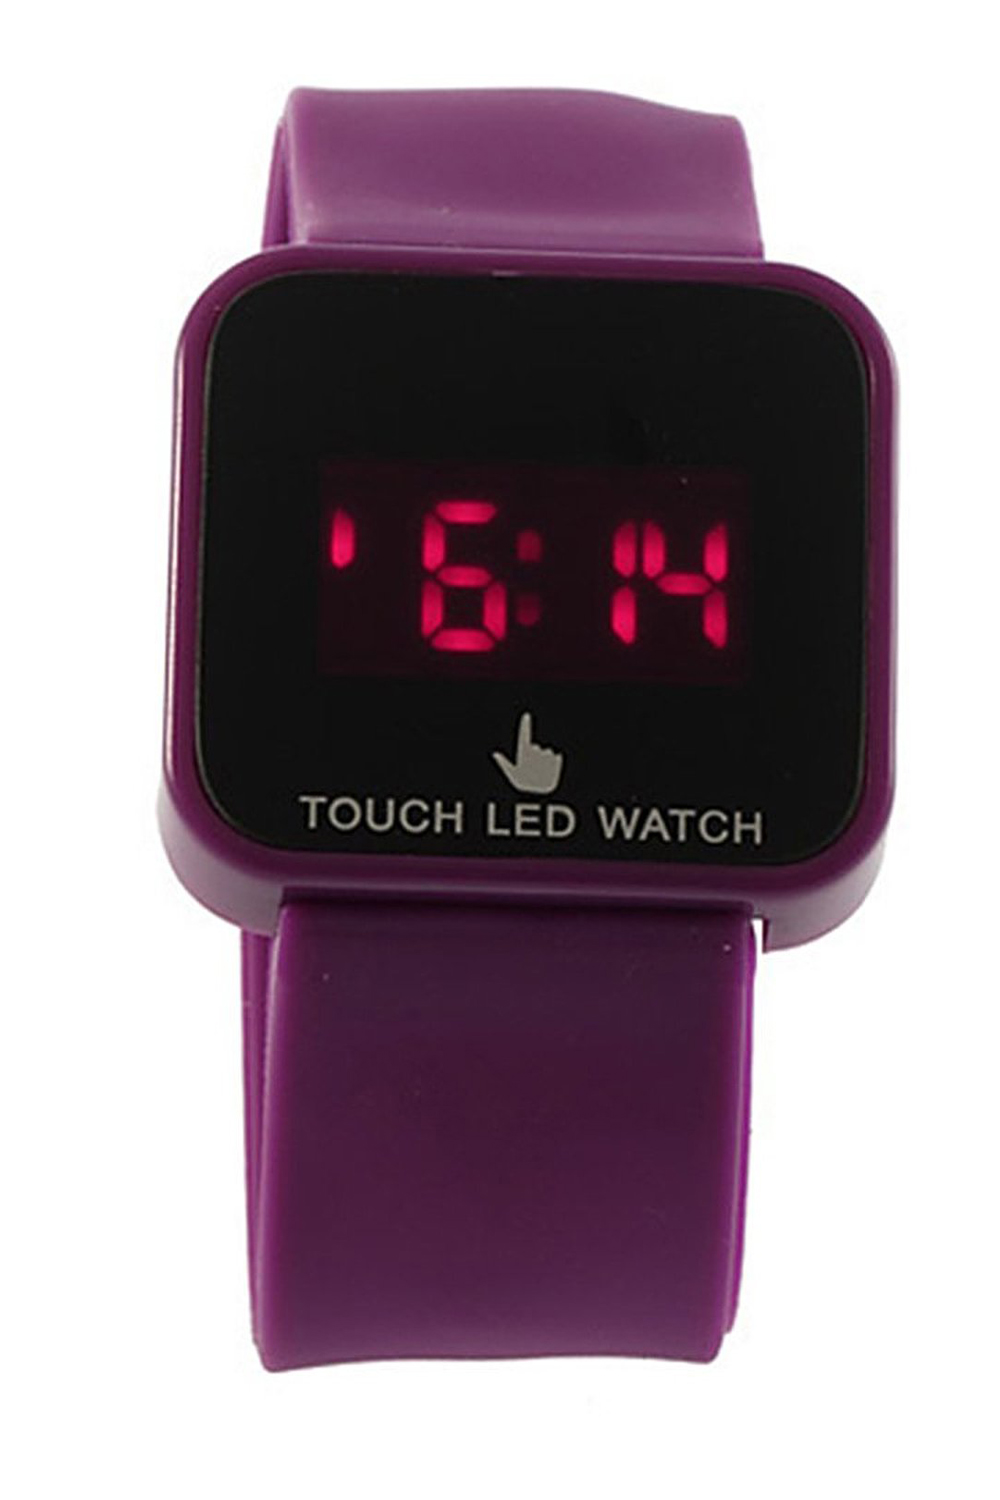 YCYS!Colorful Unisex LED Digital Touch Screen Silicone Wrist Watch Purple